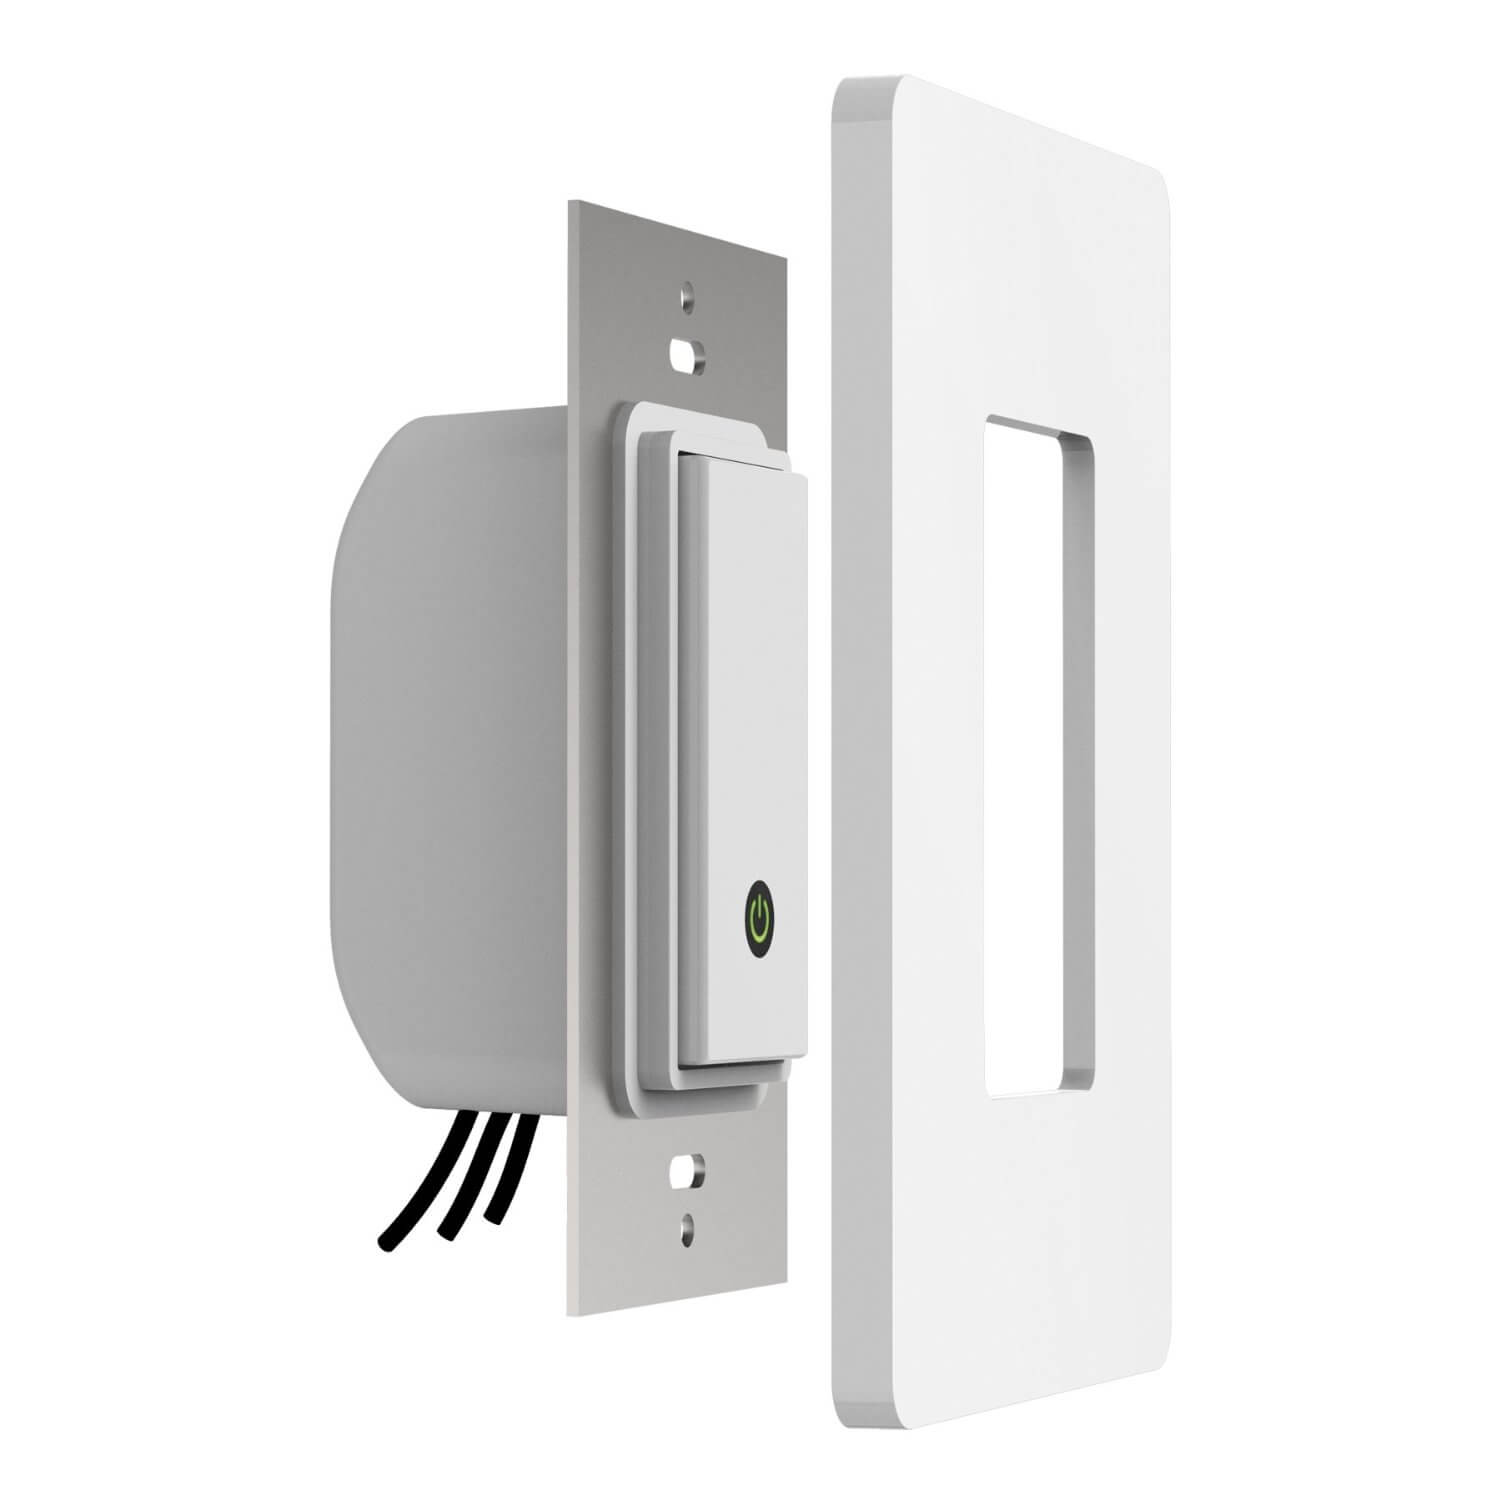 This smart outlet lets you turn electronics on or off from anywhere. It's designed to work intuitively, meshing with your existing Wi-Fi router and any wireless Apple device, allowing control over any one-way connection lights as well as other electronics that normally need hands-on power.